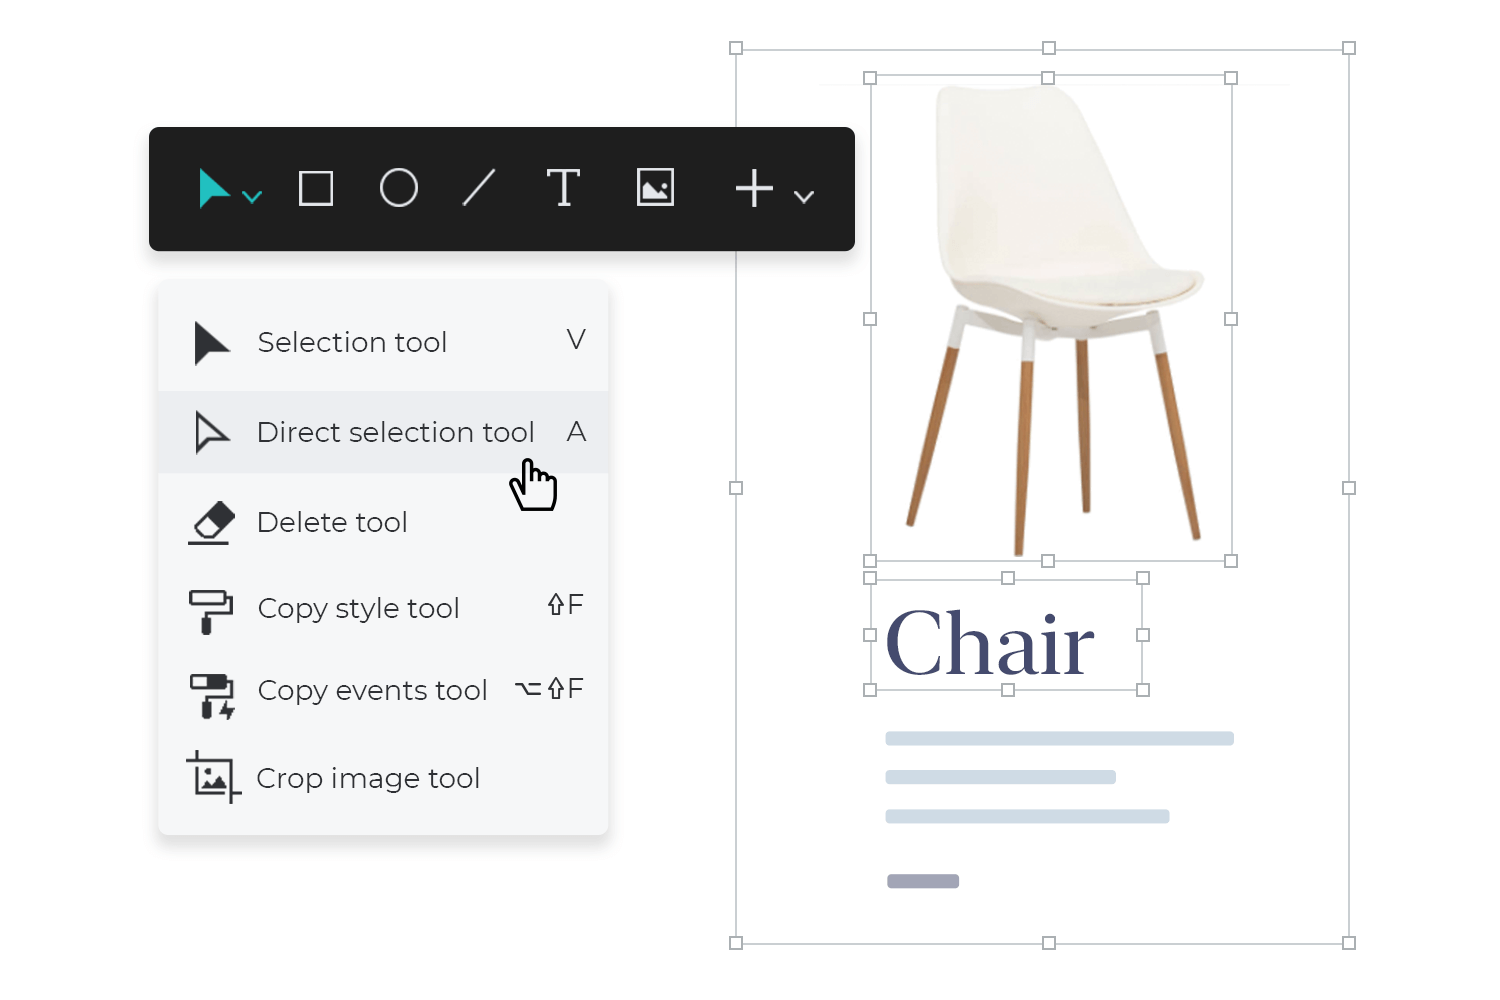 Select single elements in groups and dynamic panels - direct selection tool